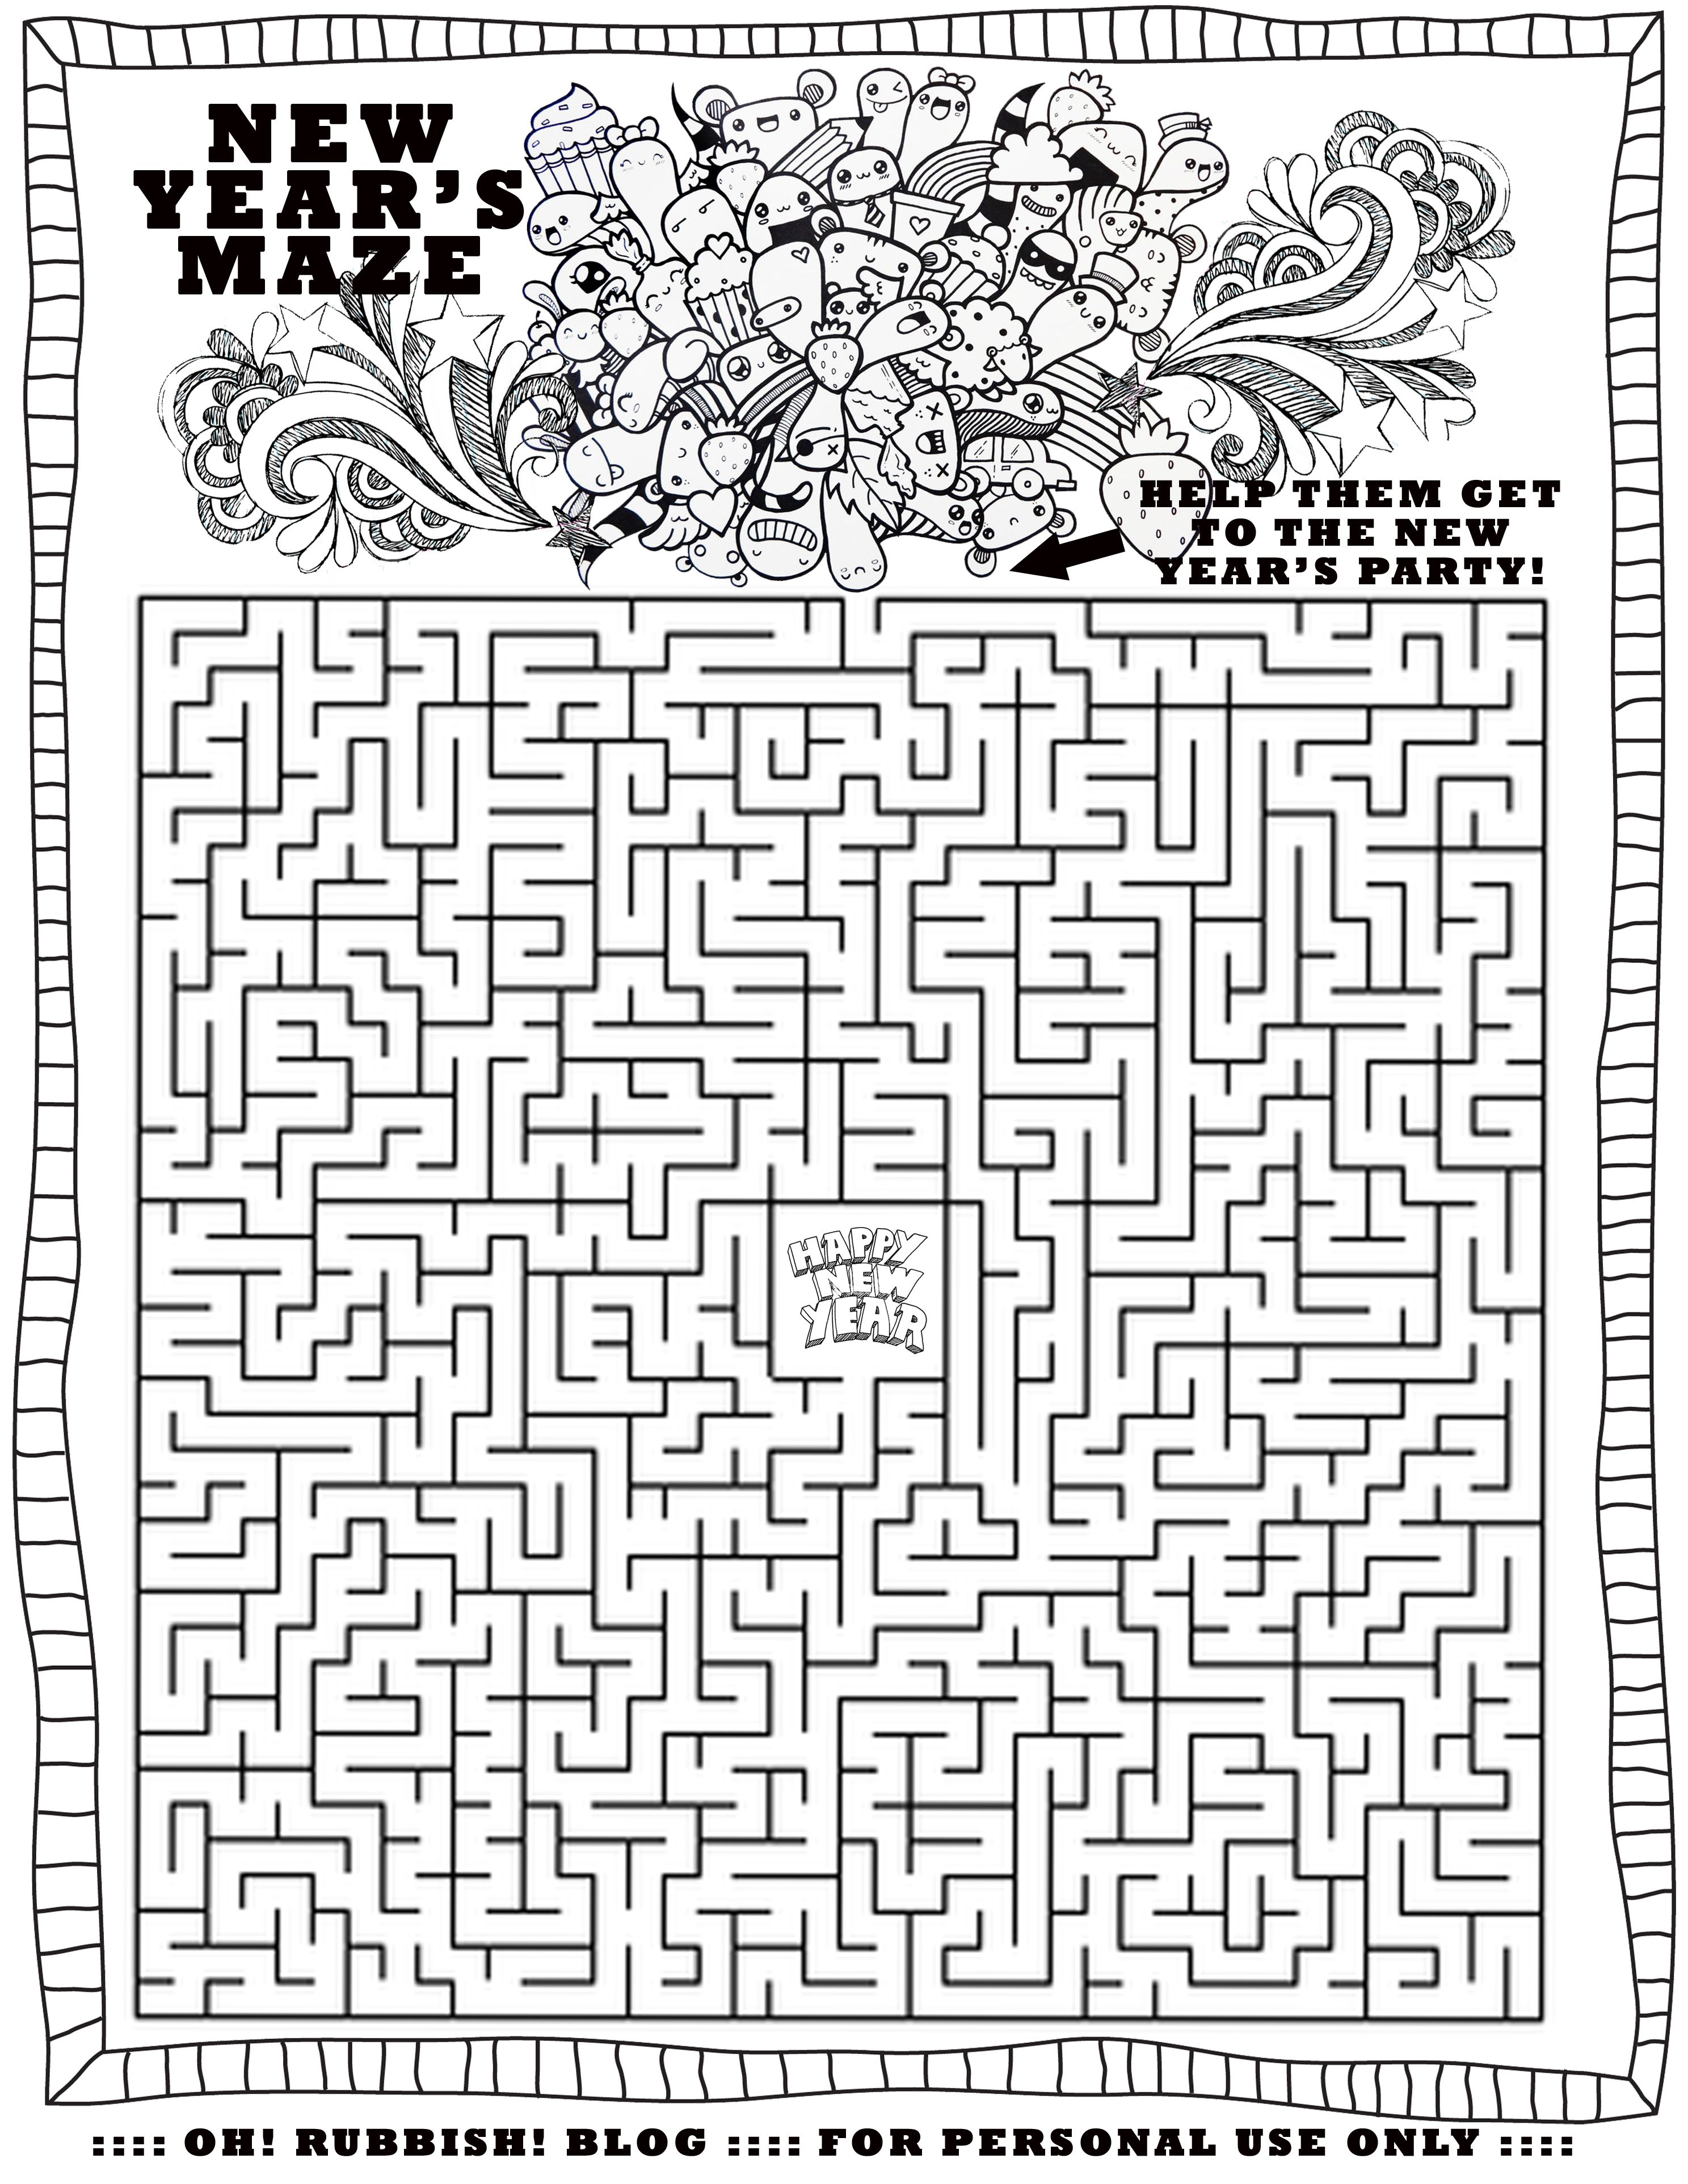 Happy New Year Maze By Oh Rubbish Blog